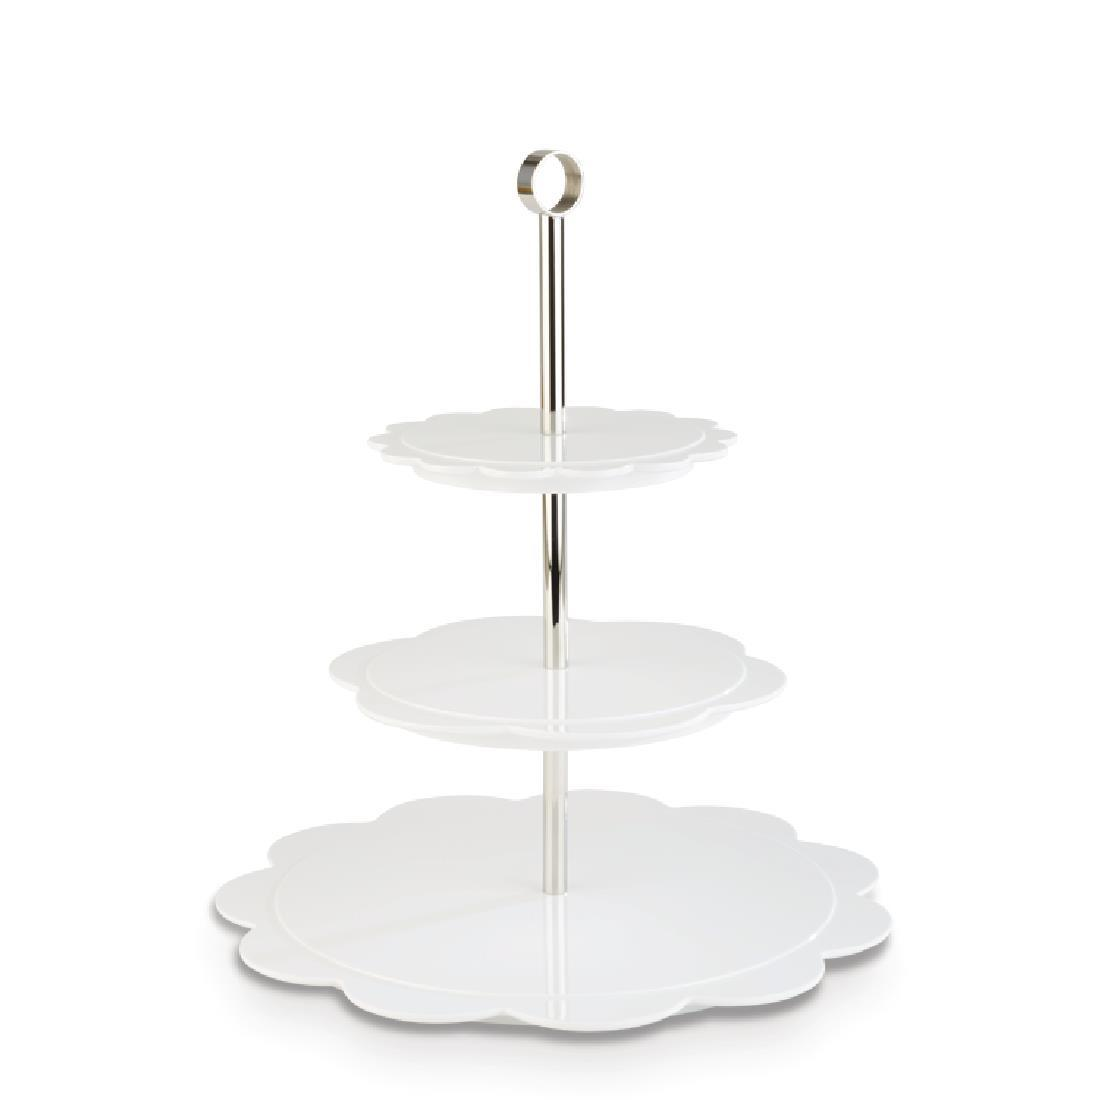 DE549 - APS+ Bakery Afternoon Tea Stand White - Each - DE549